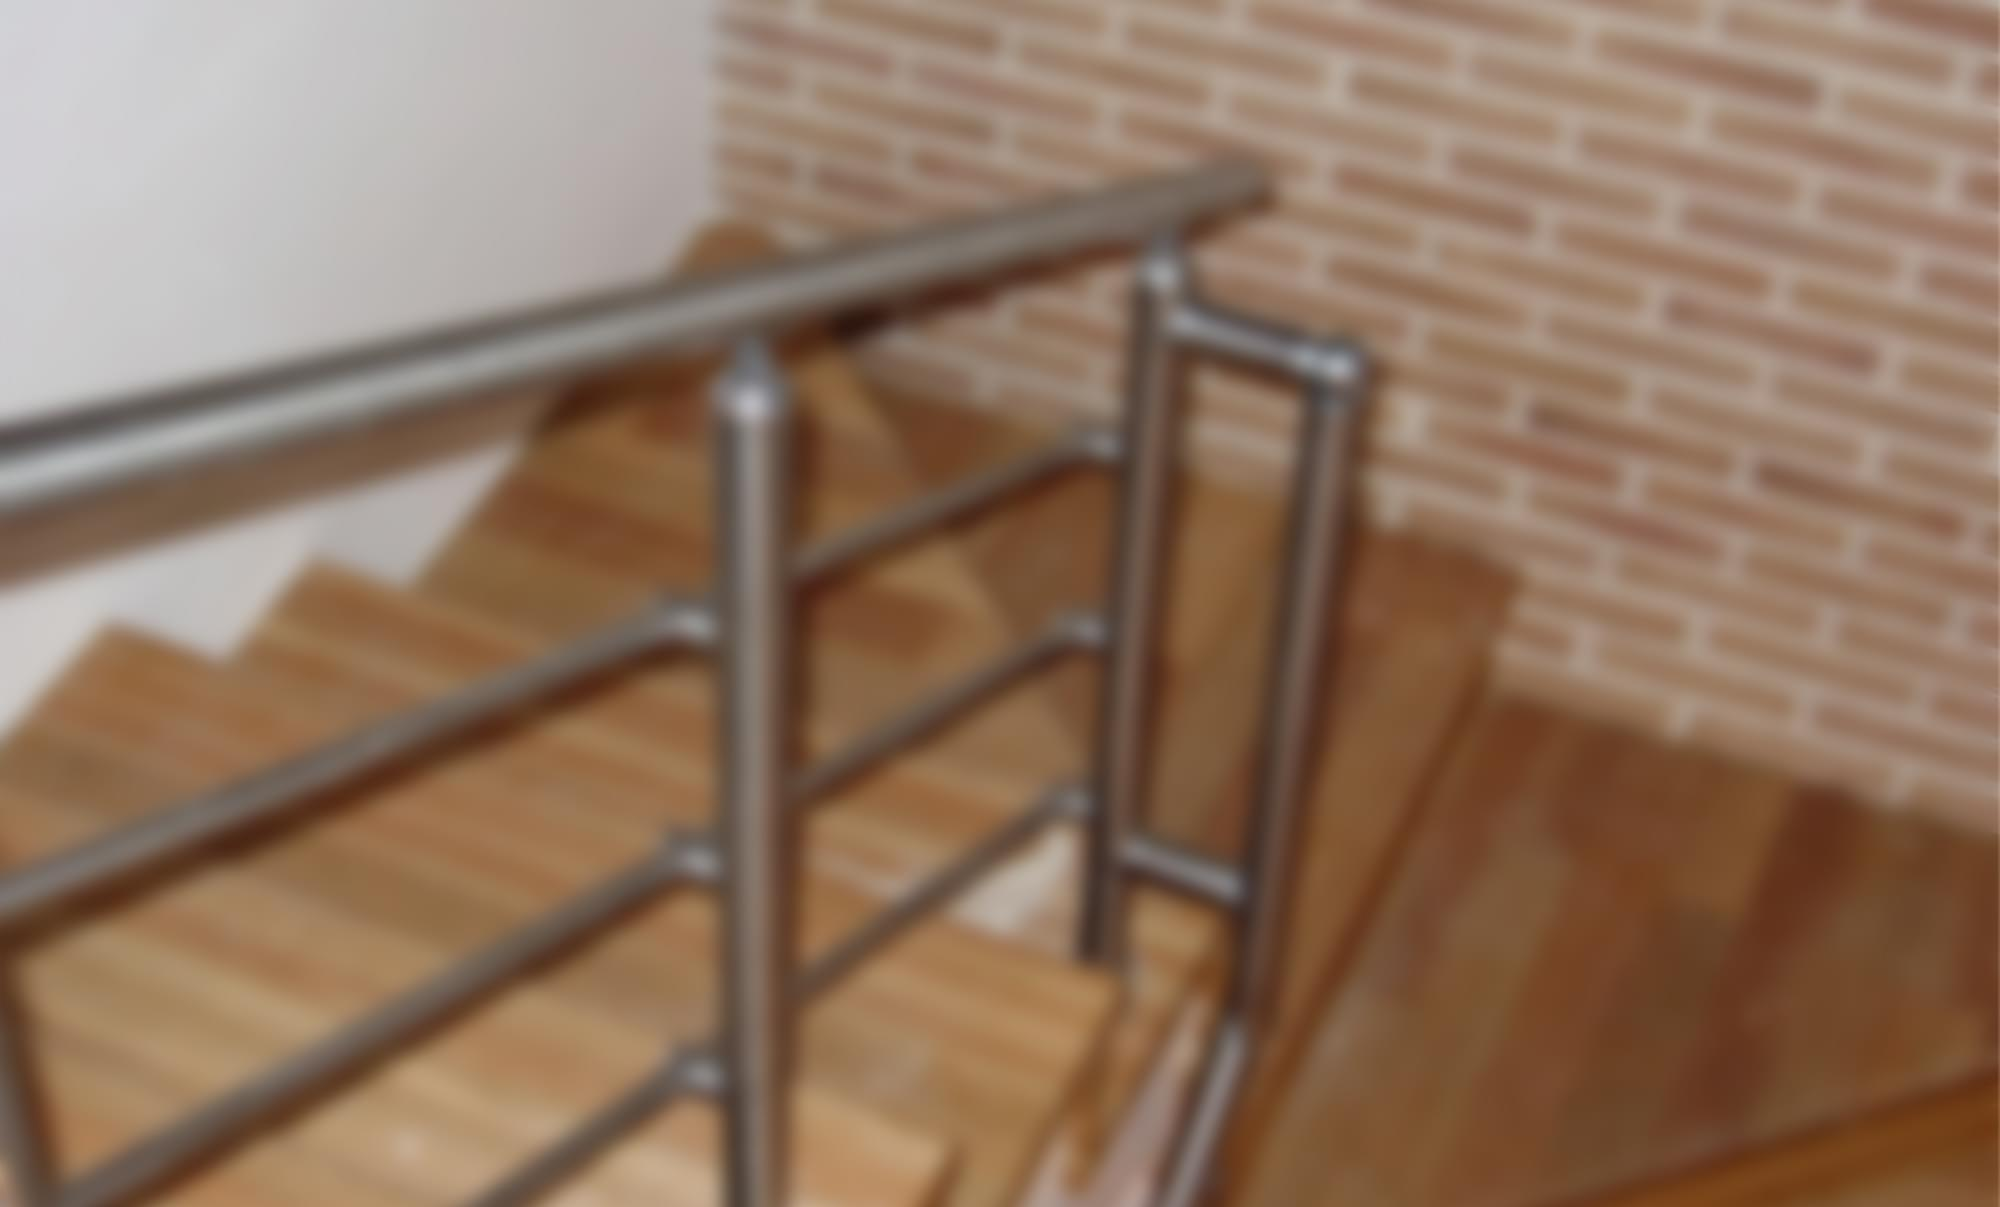 Inox railings with a horizontal filling